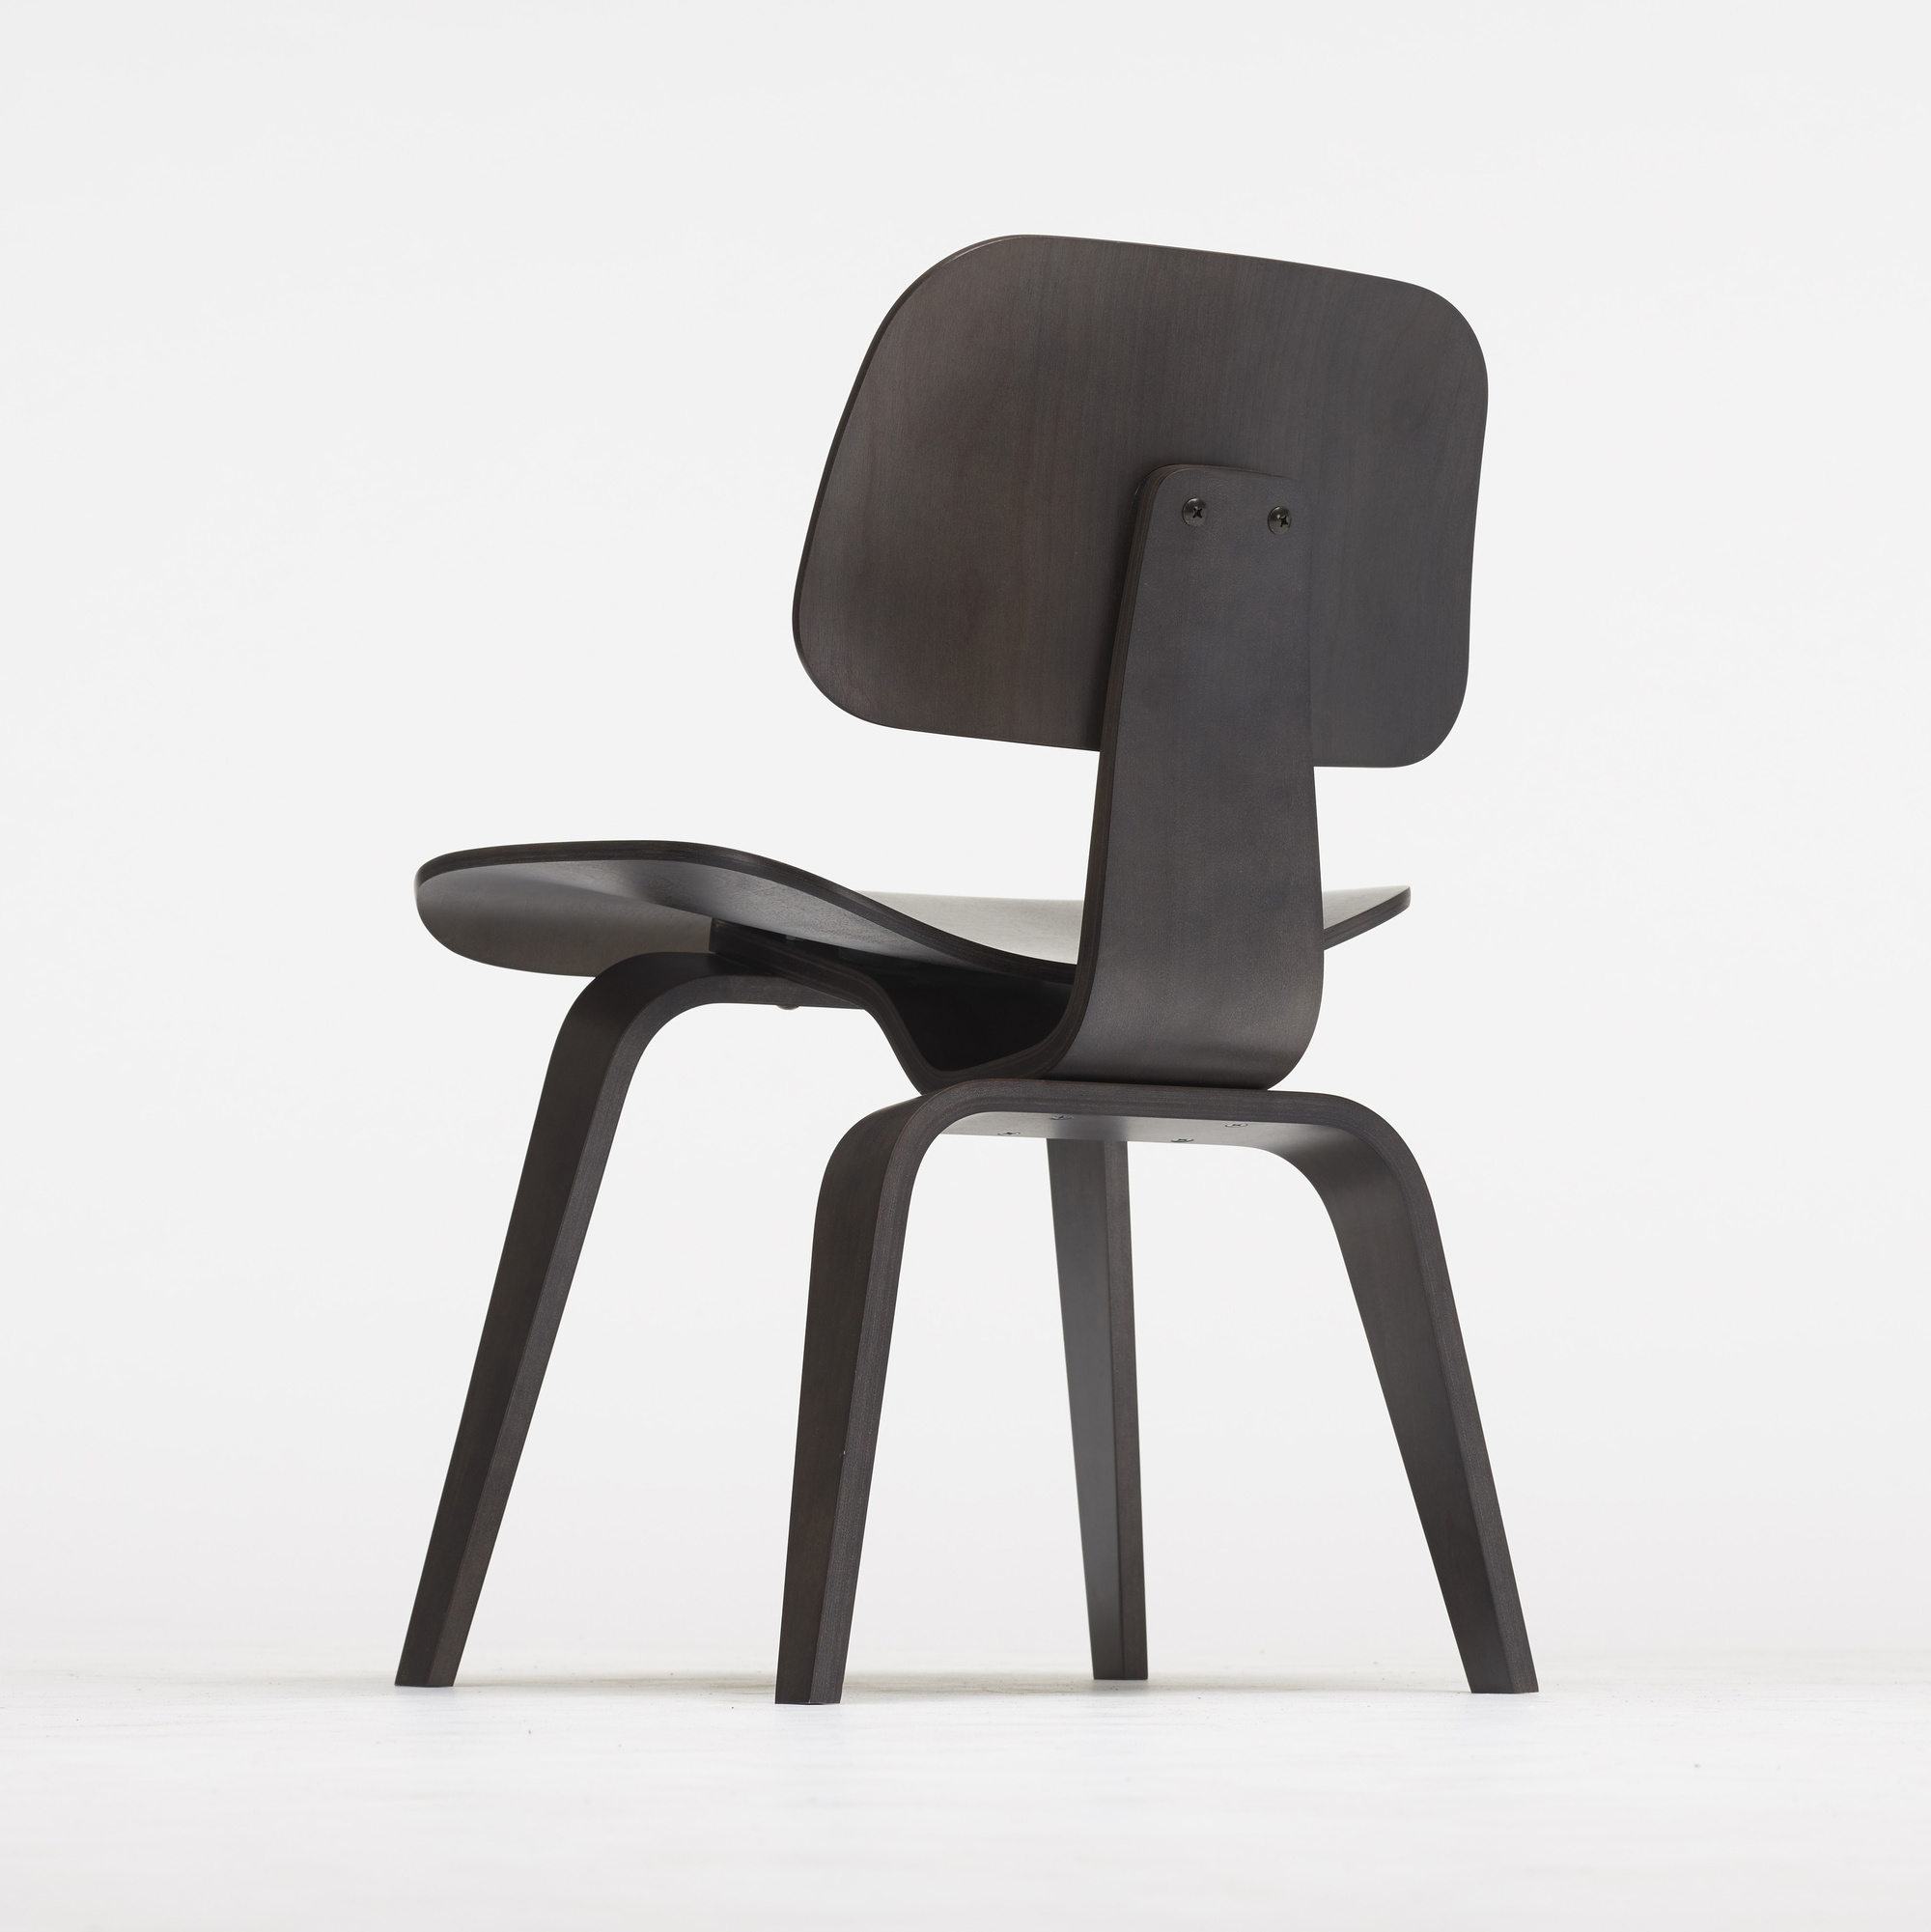 270: Charles and Ray Eames / DCW (3 of 4)